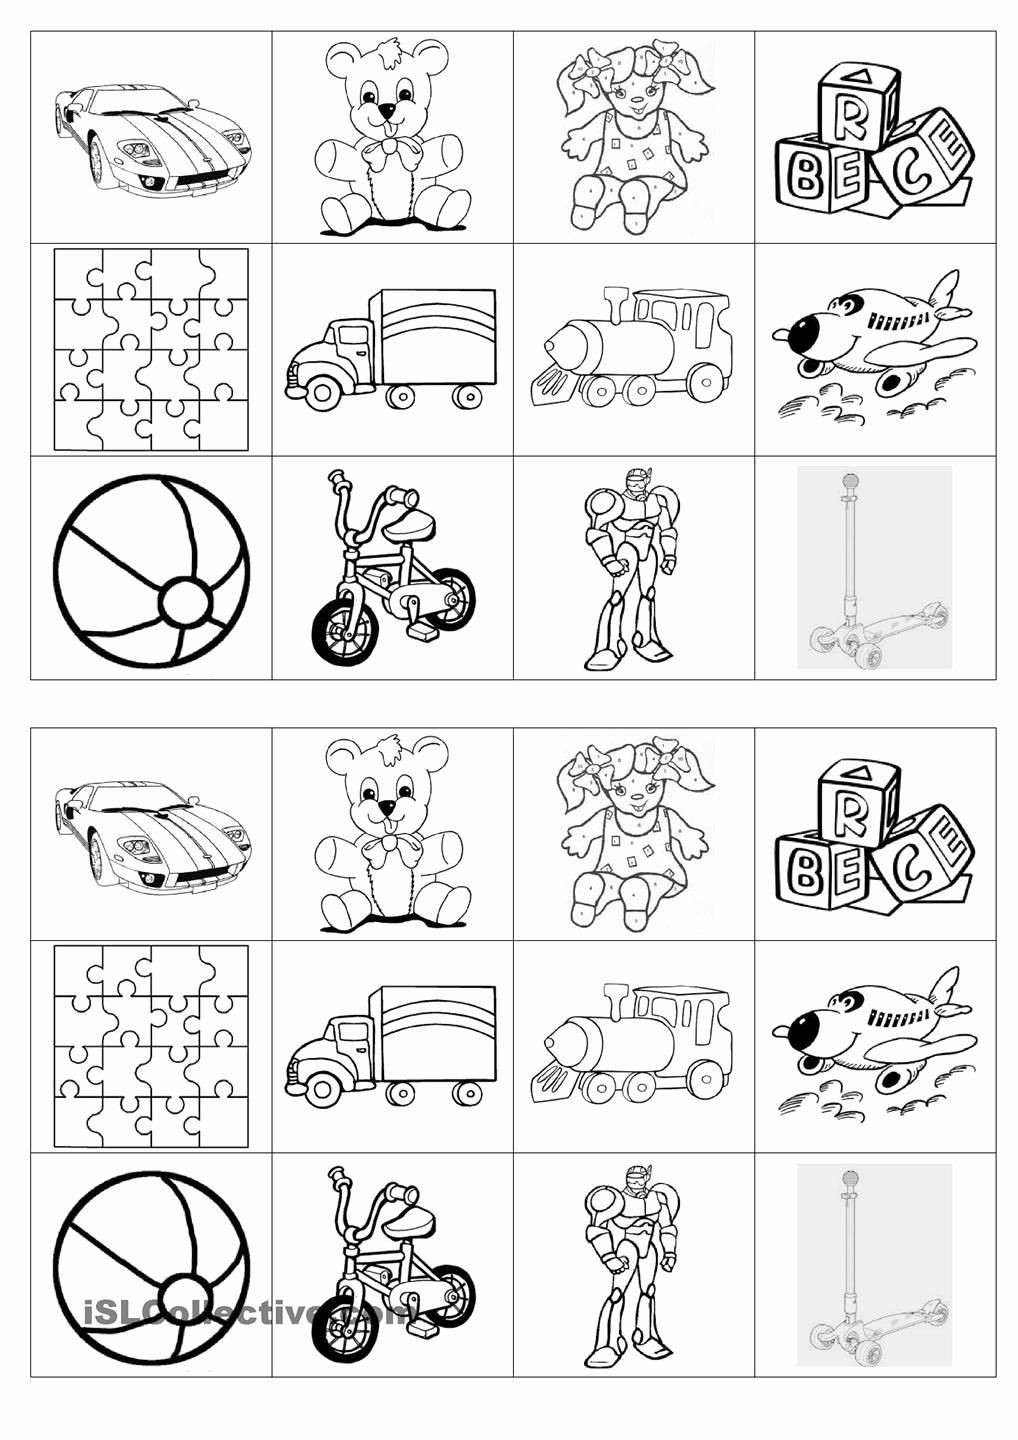 Memory Exercises for Adults Printable Esl toys Coloring Worksheet Unique Aleksandra Cho…'ojczyk